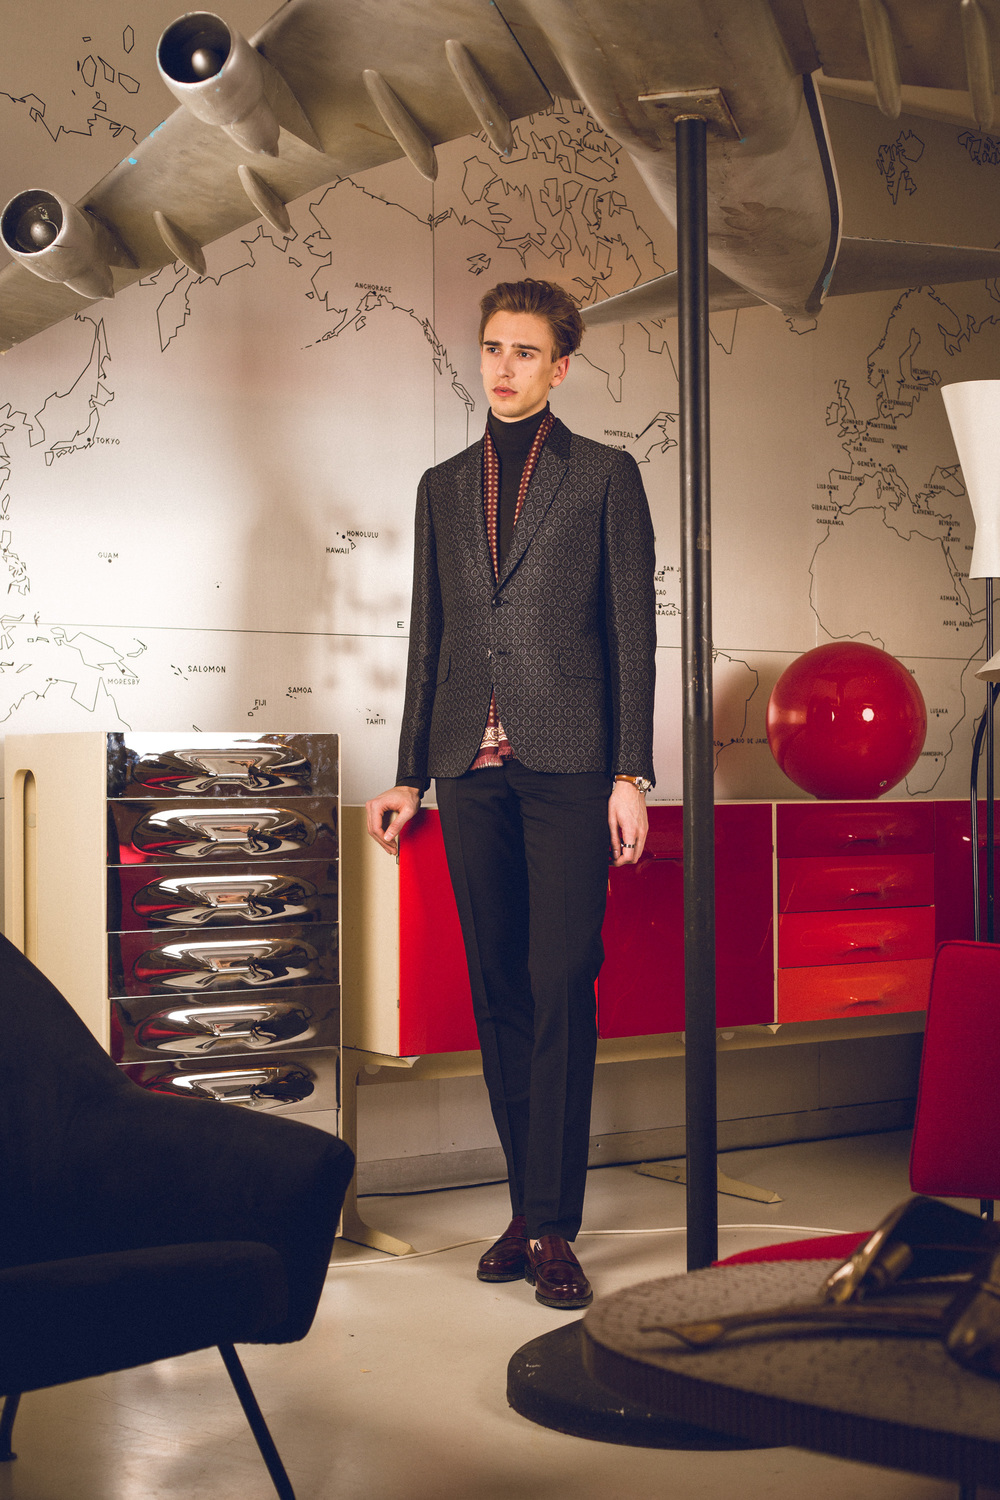 Oliver is wearing a Paul Smith suit and scarf, Fidelio roll neck sweater and Pedro loafers.